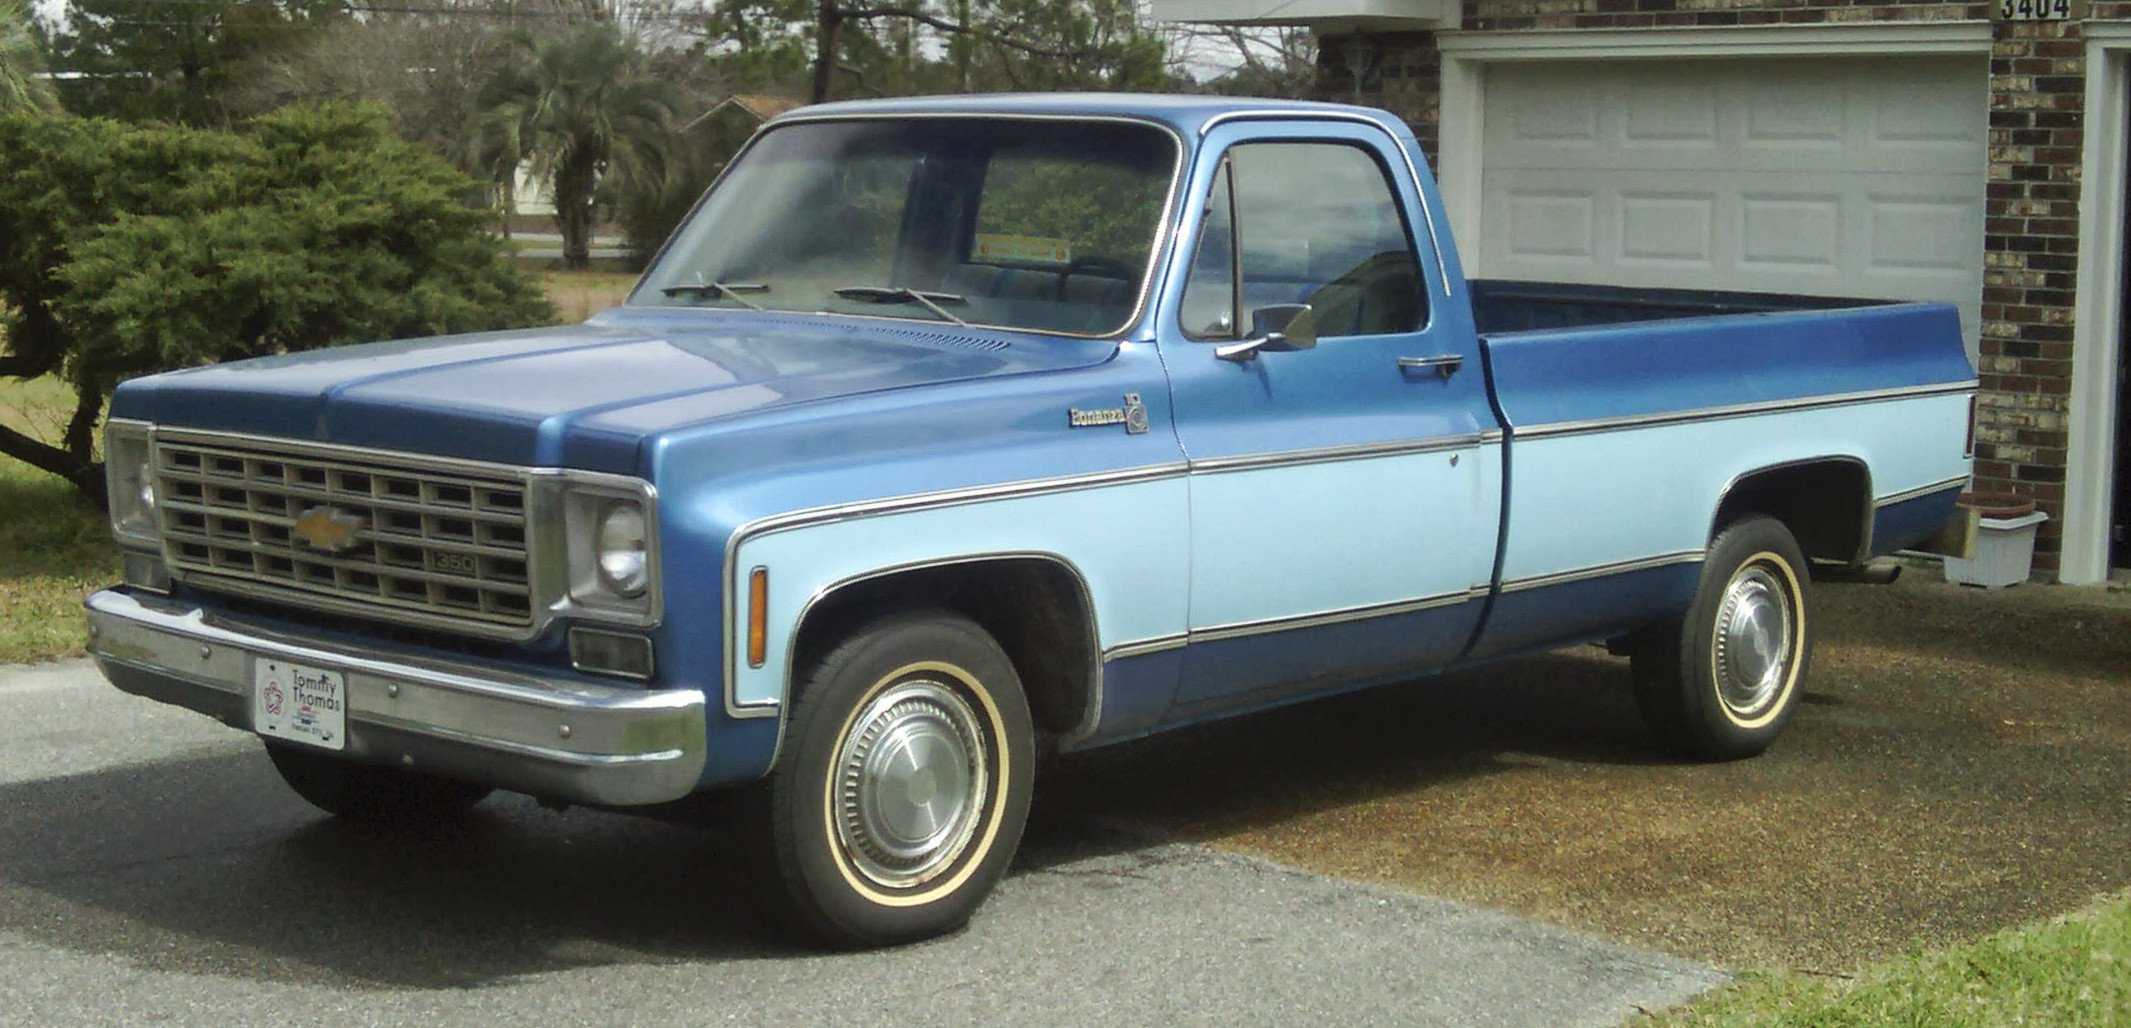 1976 Chevrolet C K Truck For Sale In Panama City Fl Ccl146b148810 Chevy Custom Deluxe